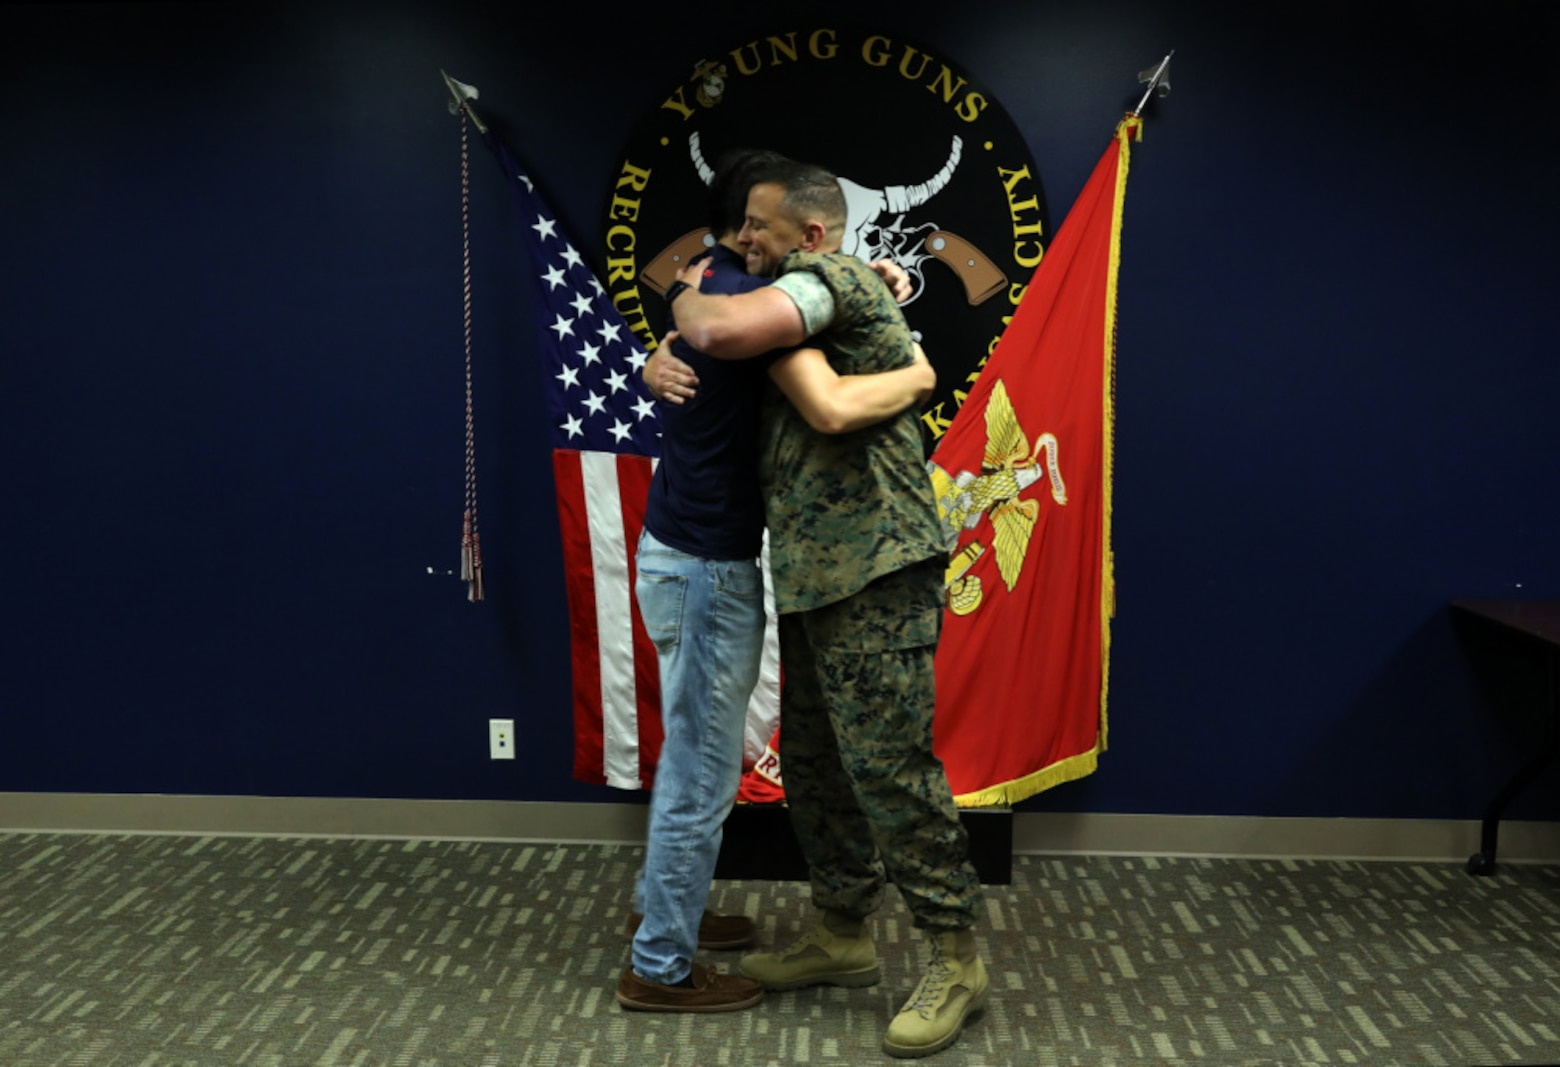 Daniel Hayek (left) and his father Maj. Richard Hayek, the Commanding officer of Marine Corps Recruiting Station Kansas City, embrace after Daniel took the Oath of Enlistment from his father at Kansas City Military Entrance Processing Station in Kansas City, Mo., July 26, 2021. By committing to the Marines, Daniel is poised to become a fourth-generation service member in his family-- following the footsteps of his mother, father, grandfather and great-grandfather. Daniel graduated from Navarre High School in Navarre, Fla., in 2020.